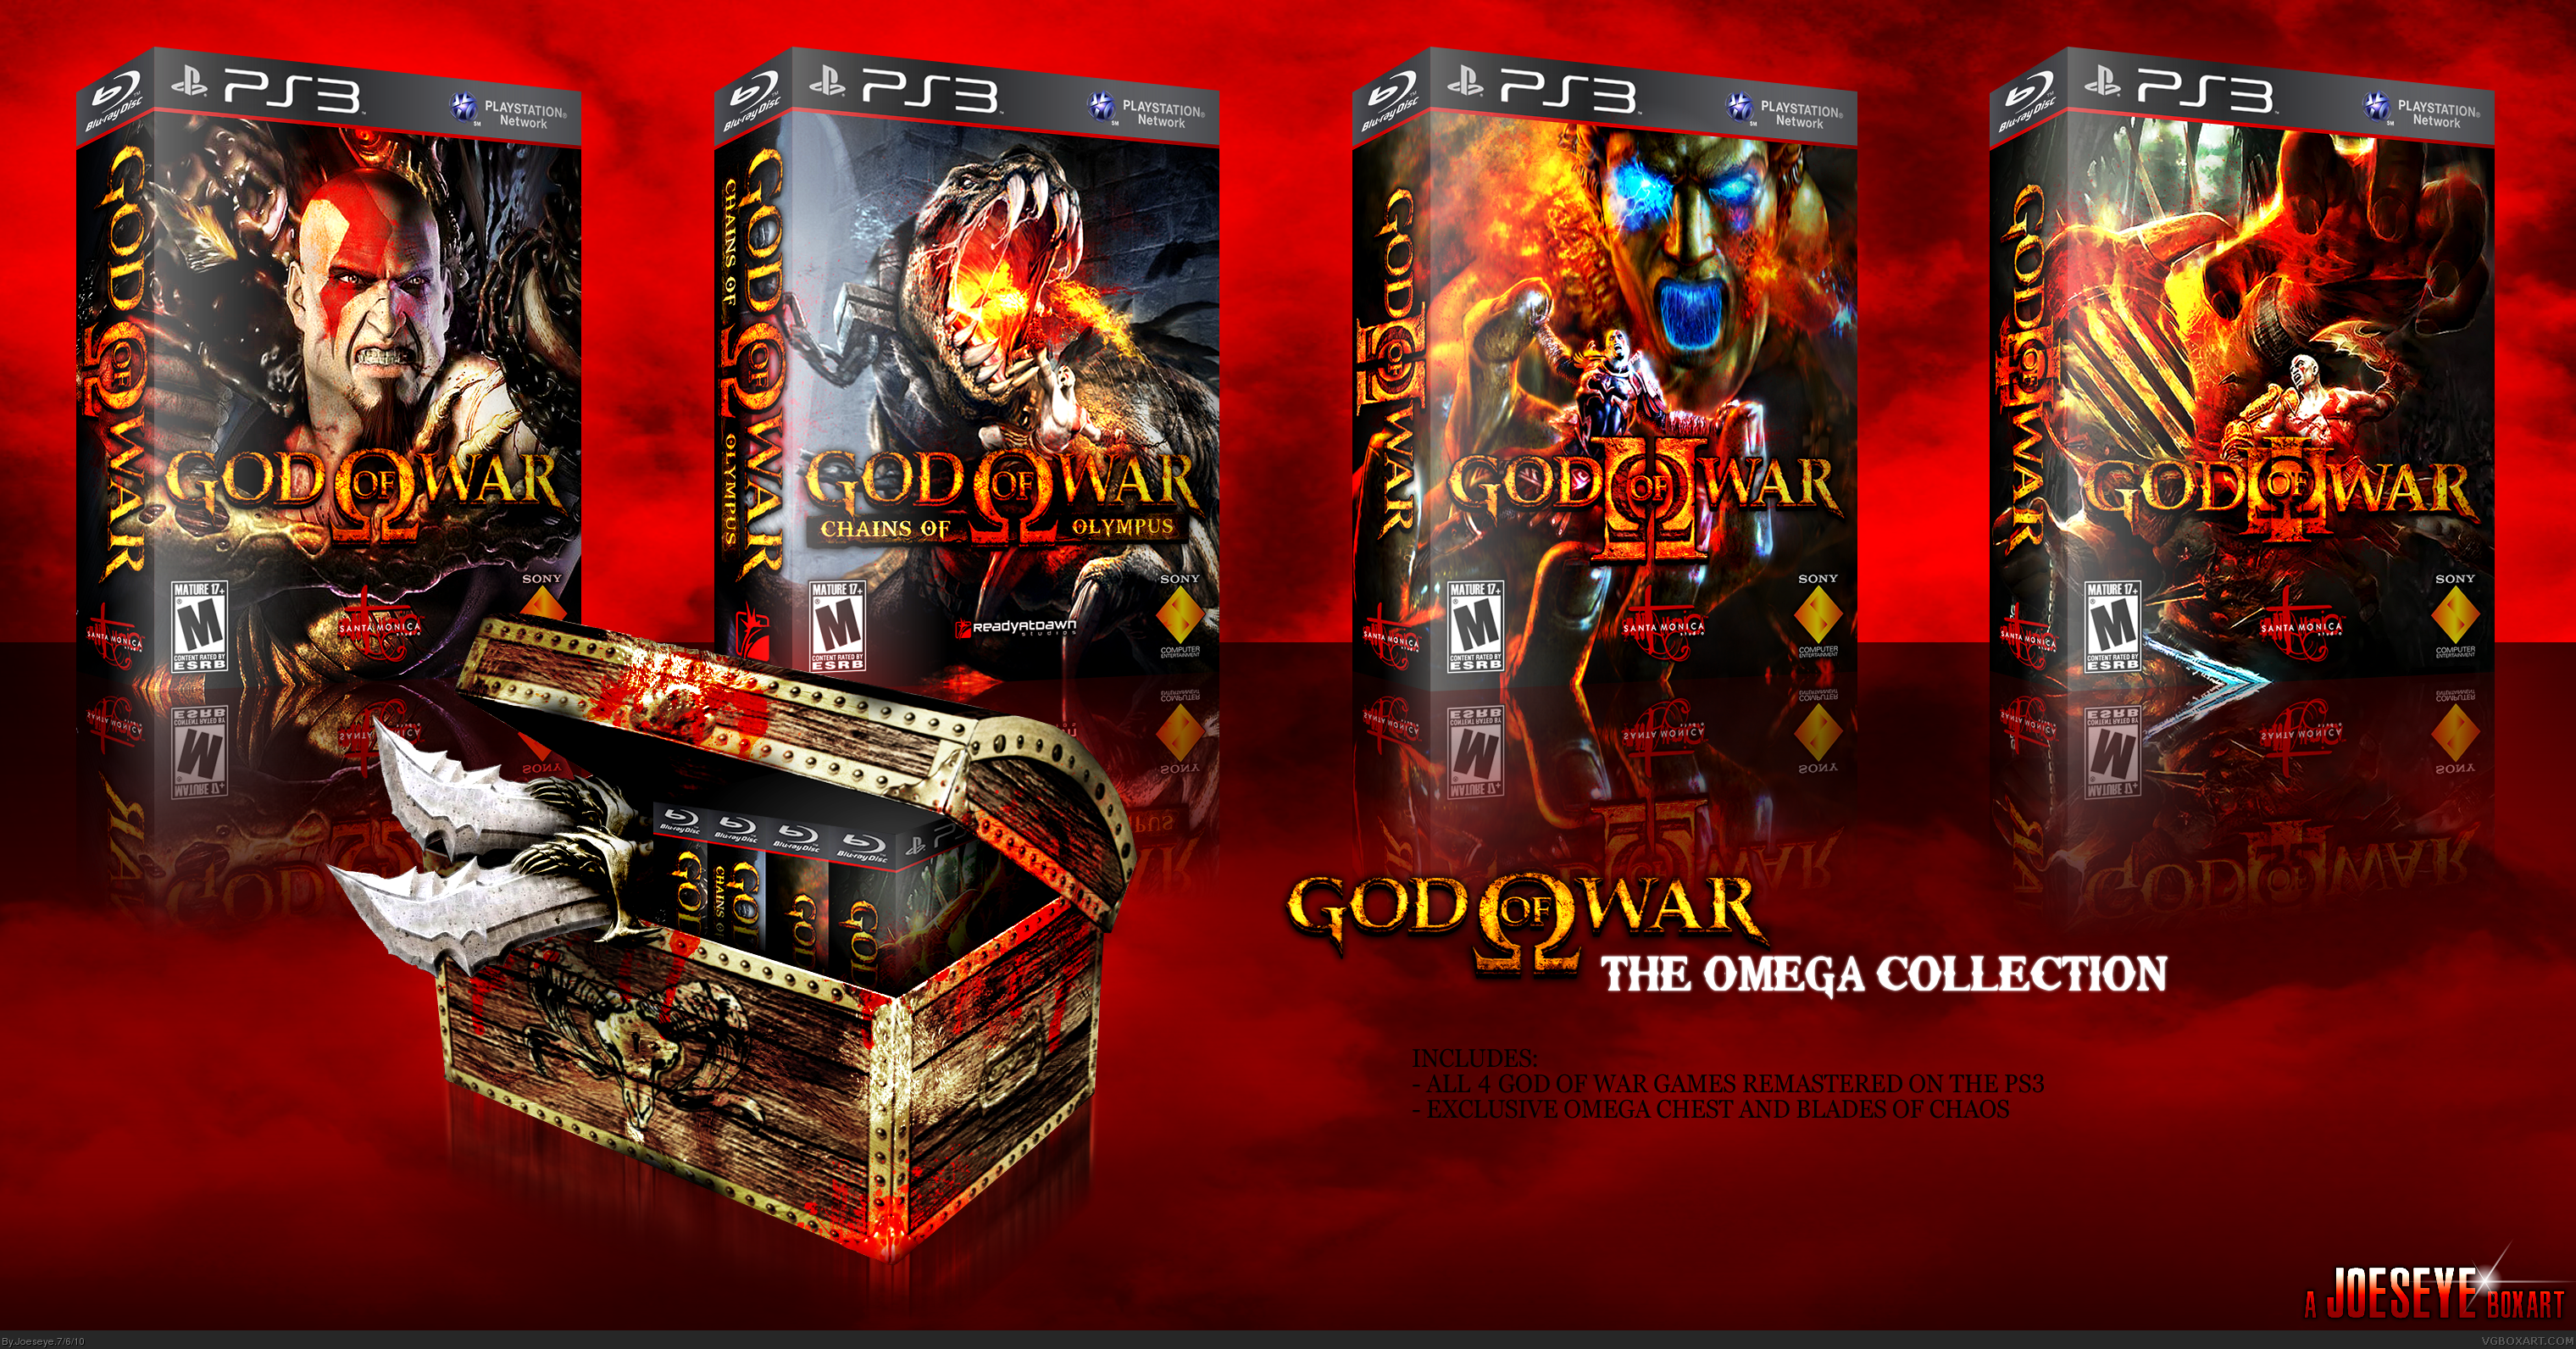 God of War: The Omega Collection box cover